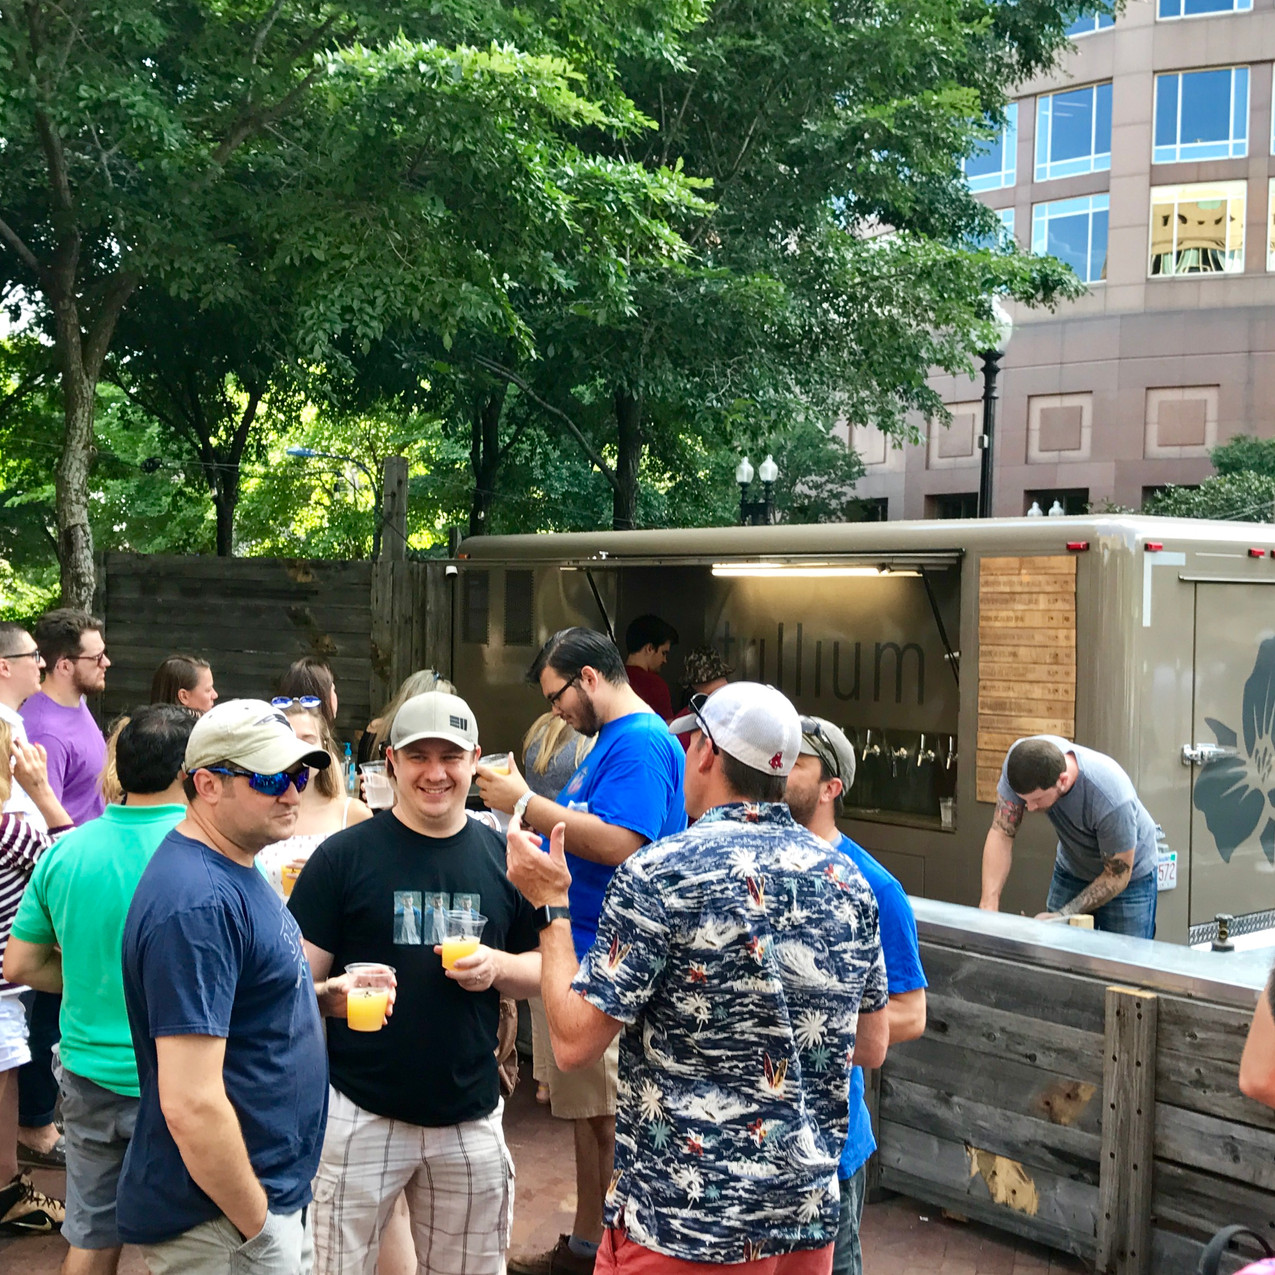 Trillium Beer Garden on the Greenway